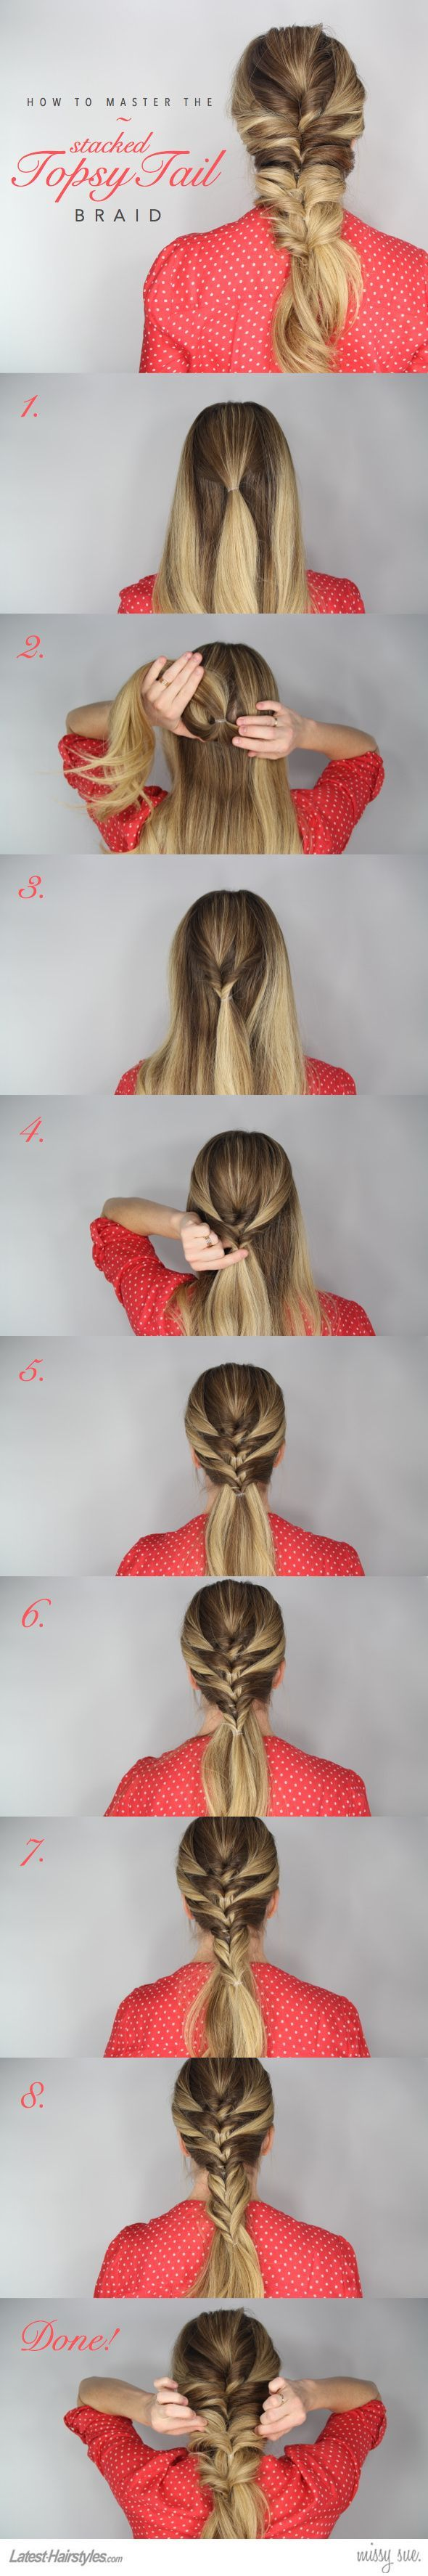 Coiffure hair styles pinterest fun hairstyles easy and hair style